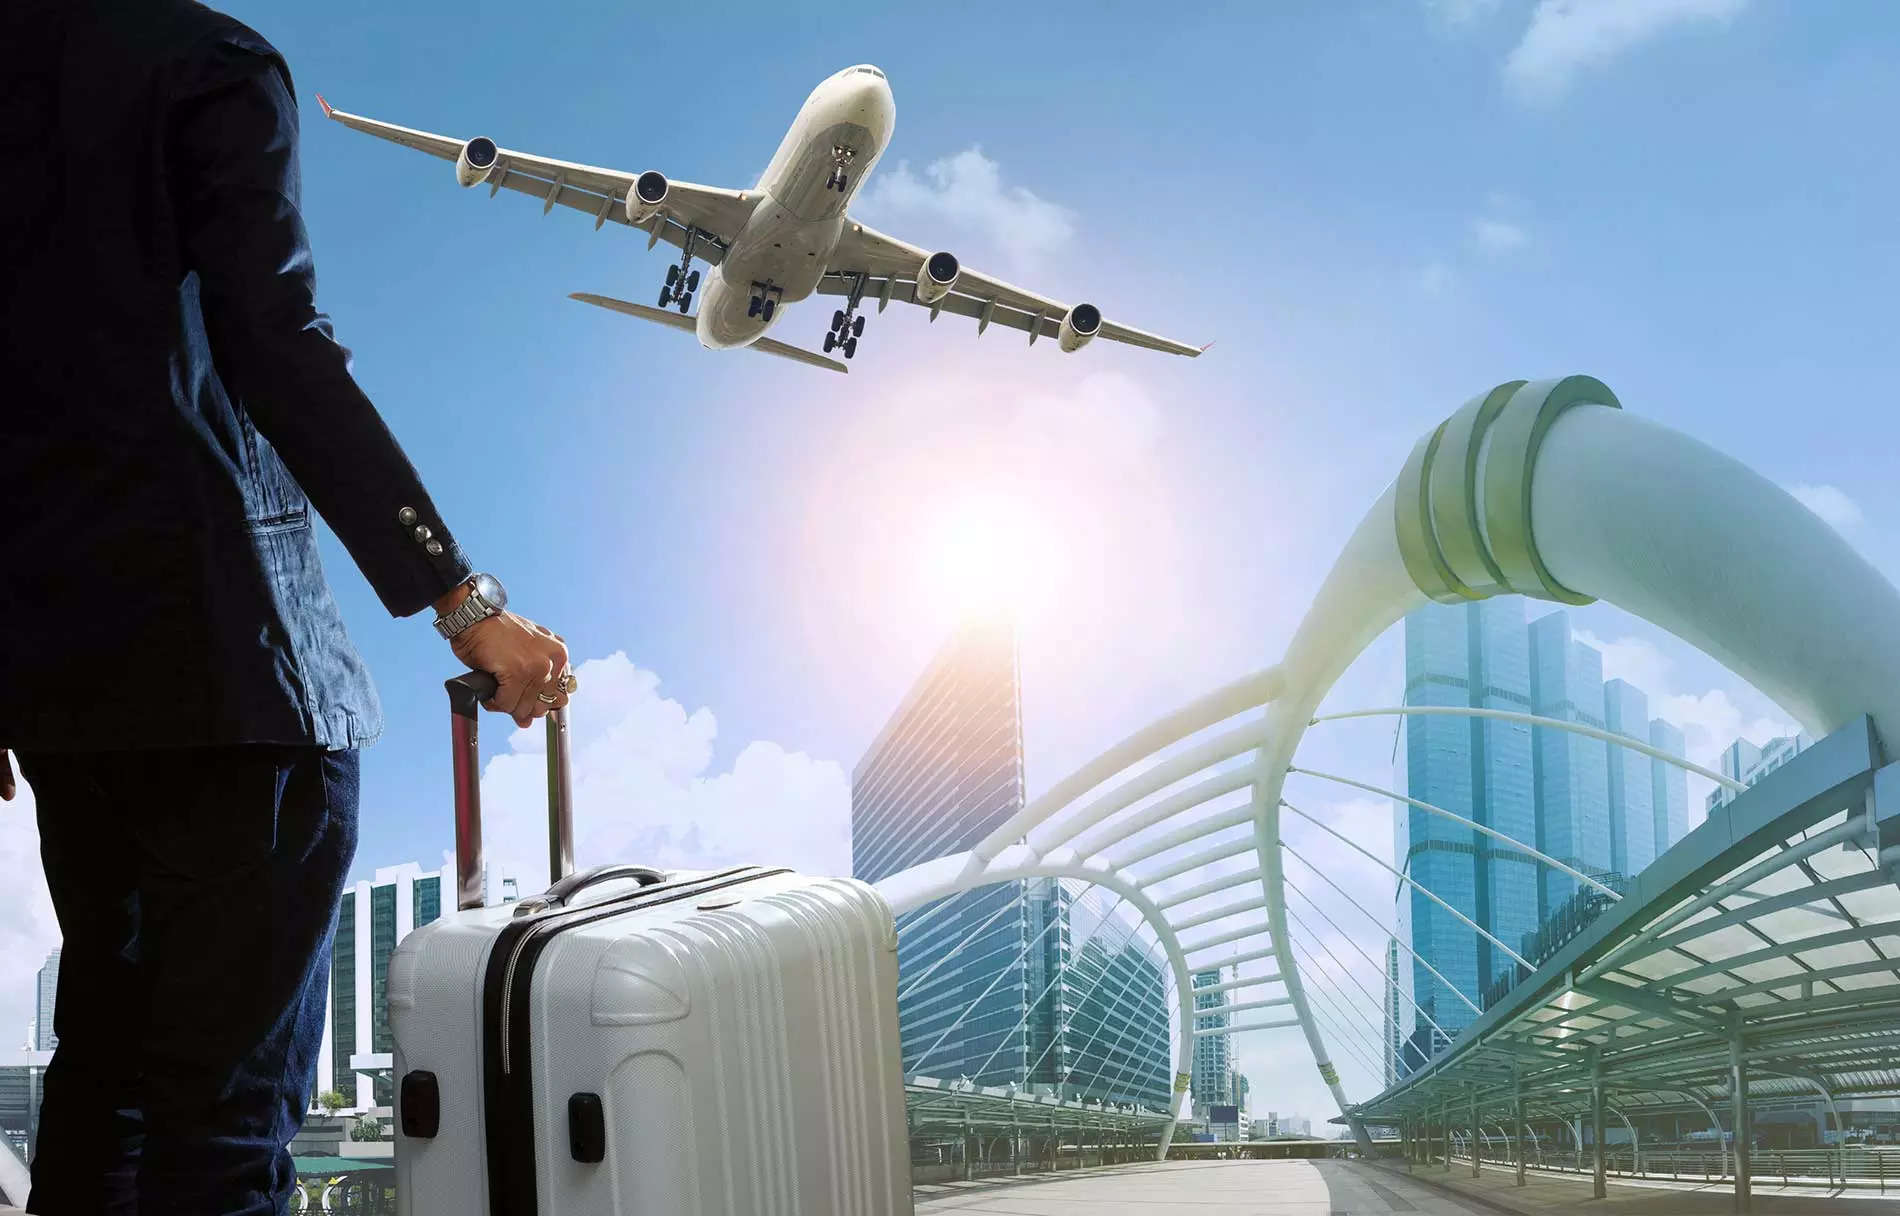 40% of professionals concerned about career growth and earning due to no clarity on revival of business travel